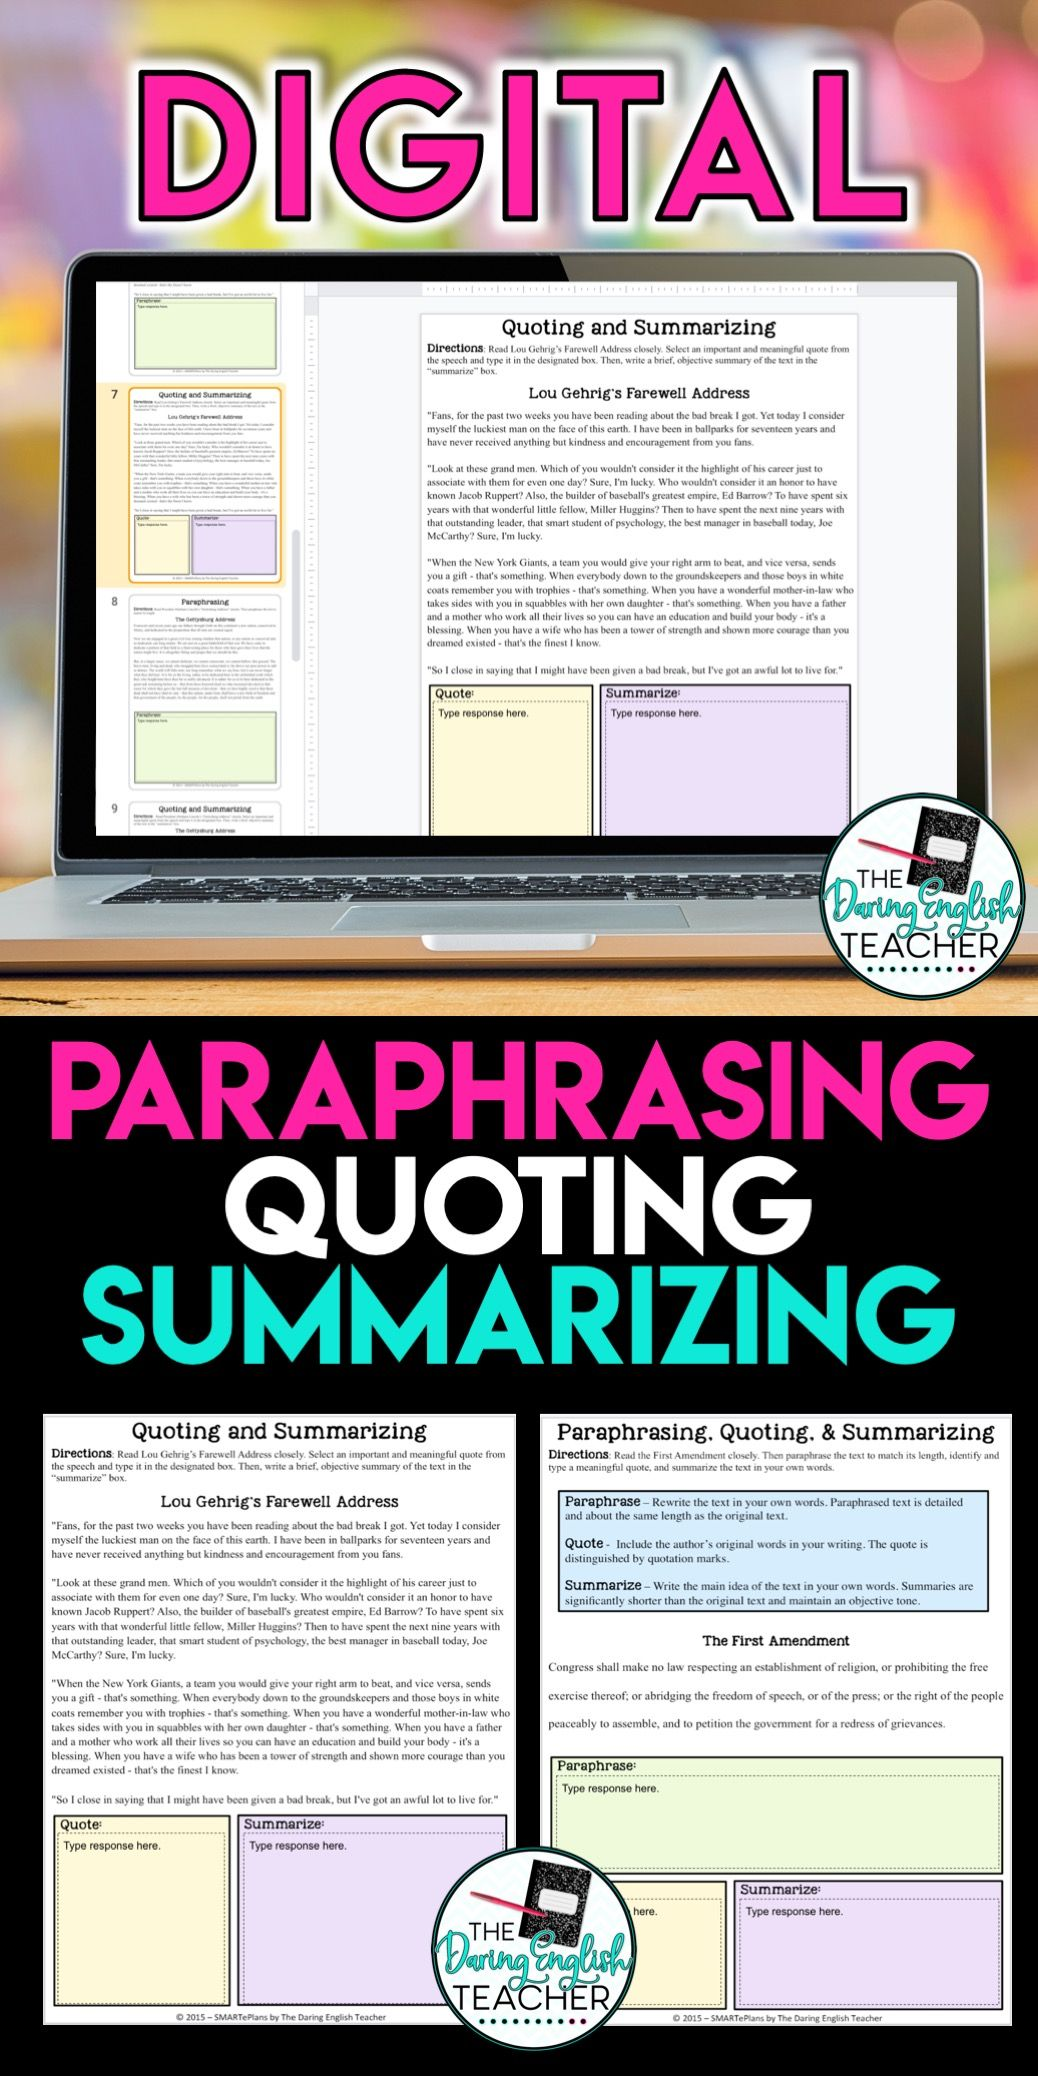 Paraphrasing Quoting Summarizing Digital Unit Distance Learning Writing Lesson Teaching Reading Skill Activities And Summary Exercises Exercise Pdf